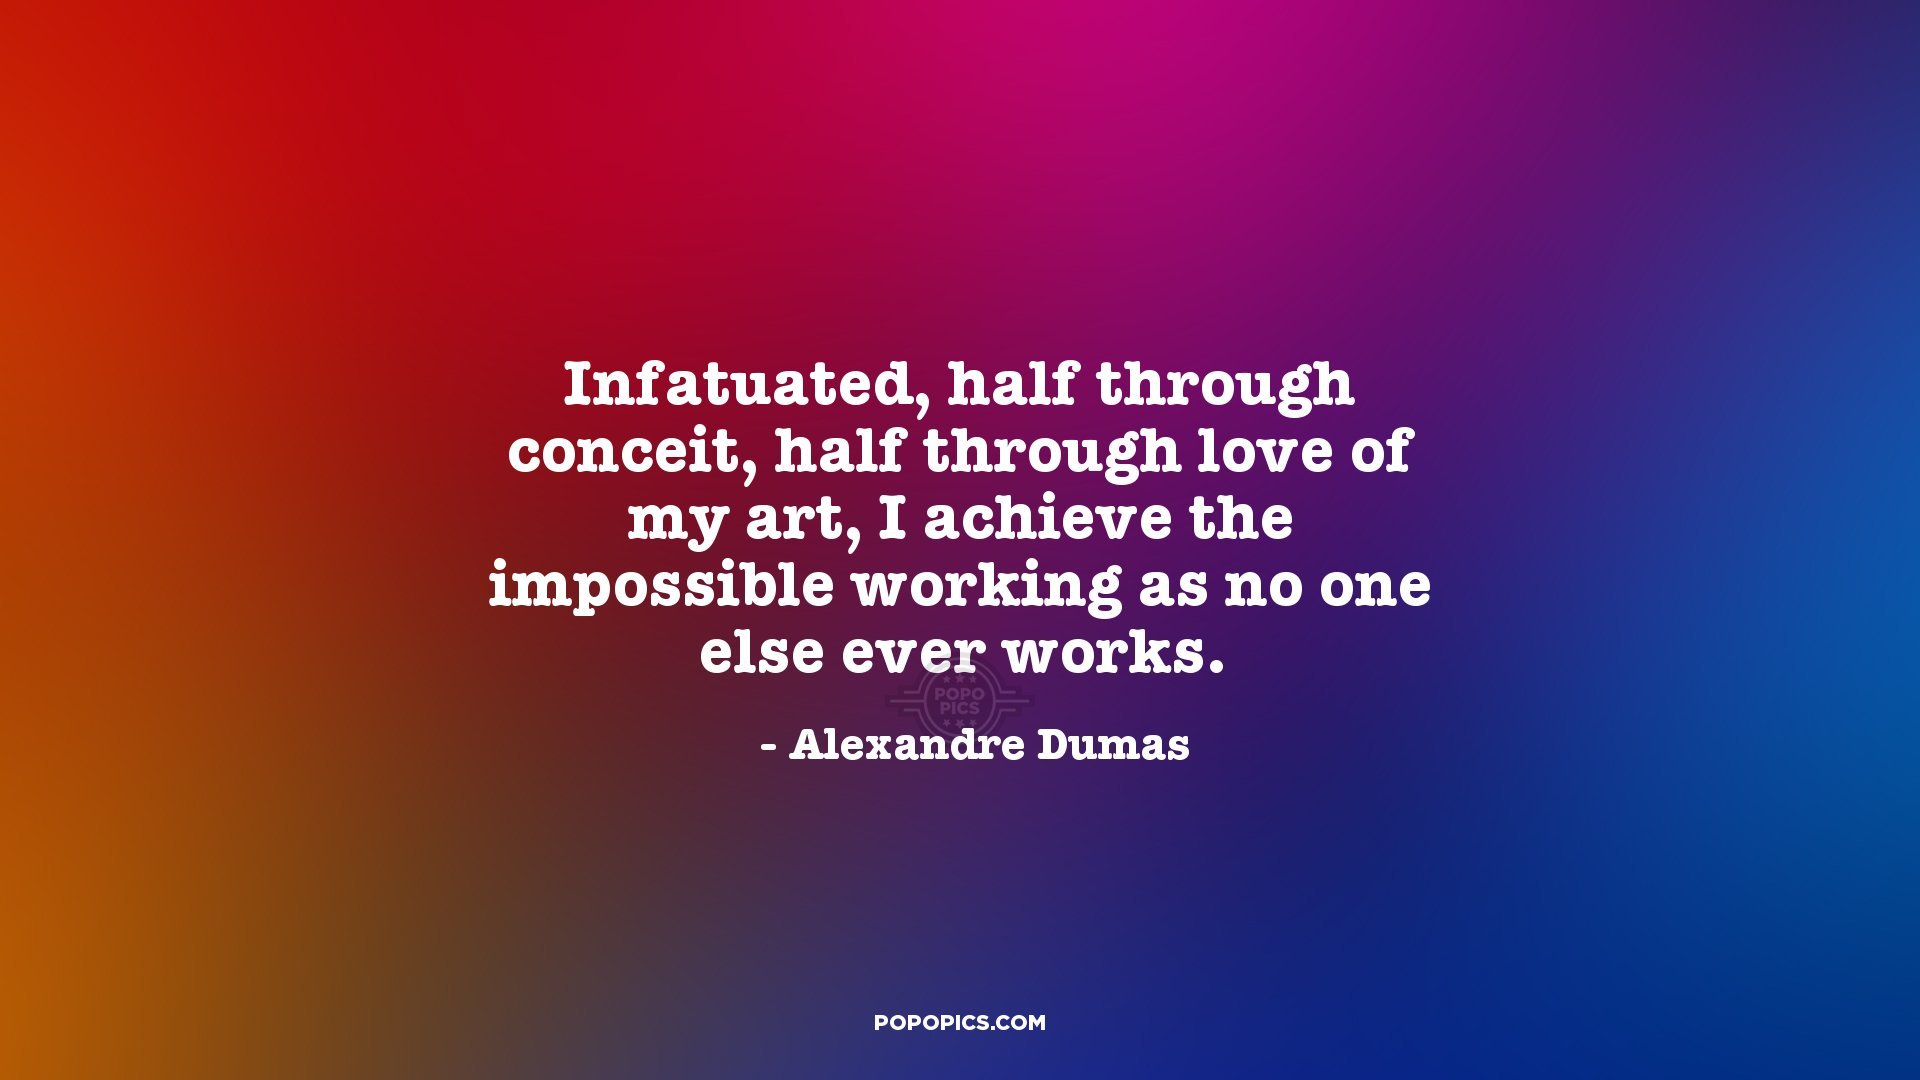 quotes about being infatuated